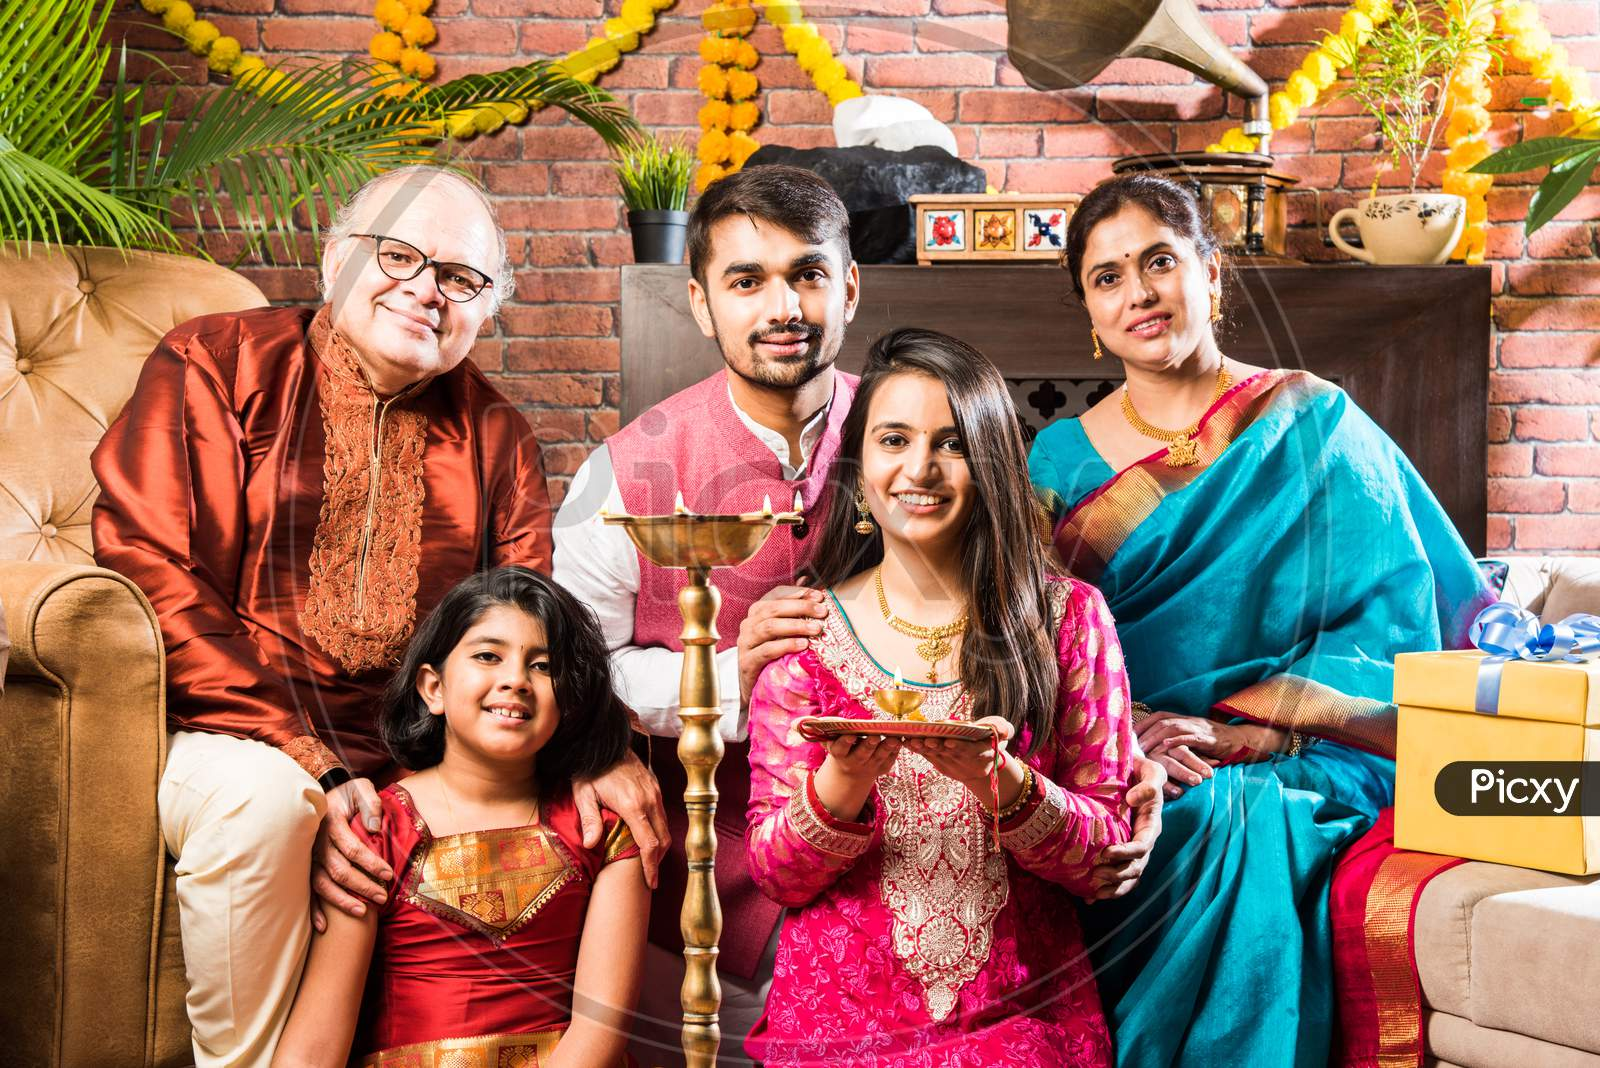 Happy Indian Family Performing Puja Or Pooja On Ganesh Chaturthi Festival